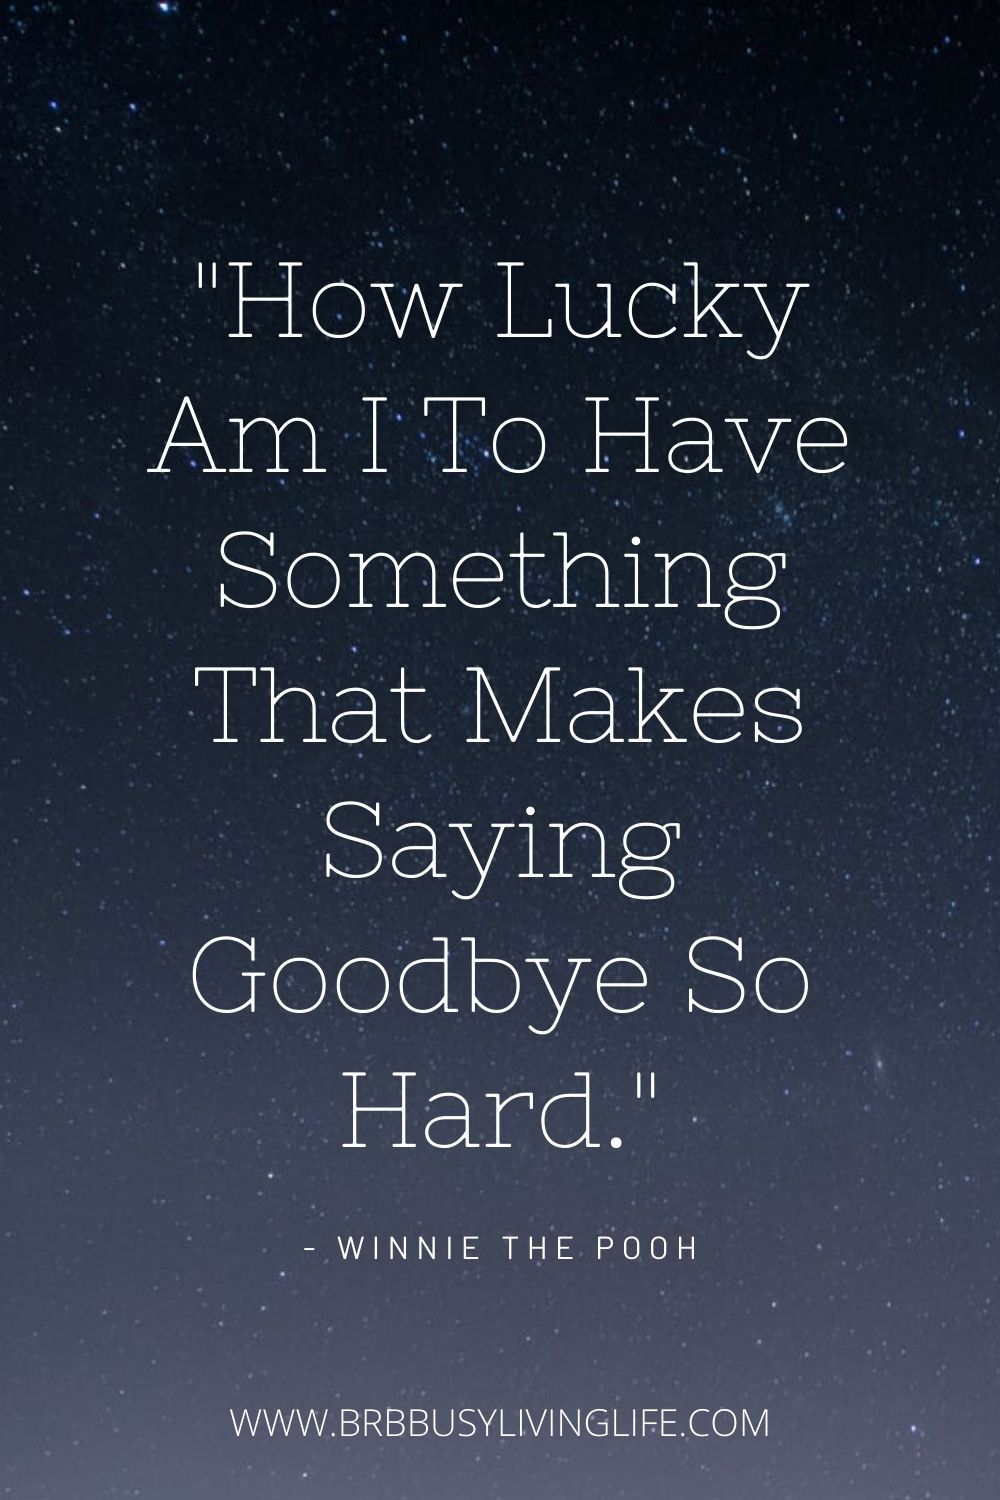 Homesick Quote For Those Missing Home Homesick Quotes Home Quotes And Sayings Feel Good Quotes